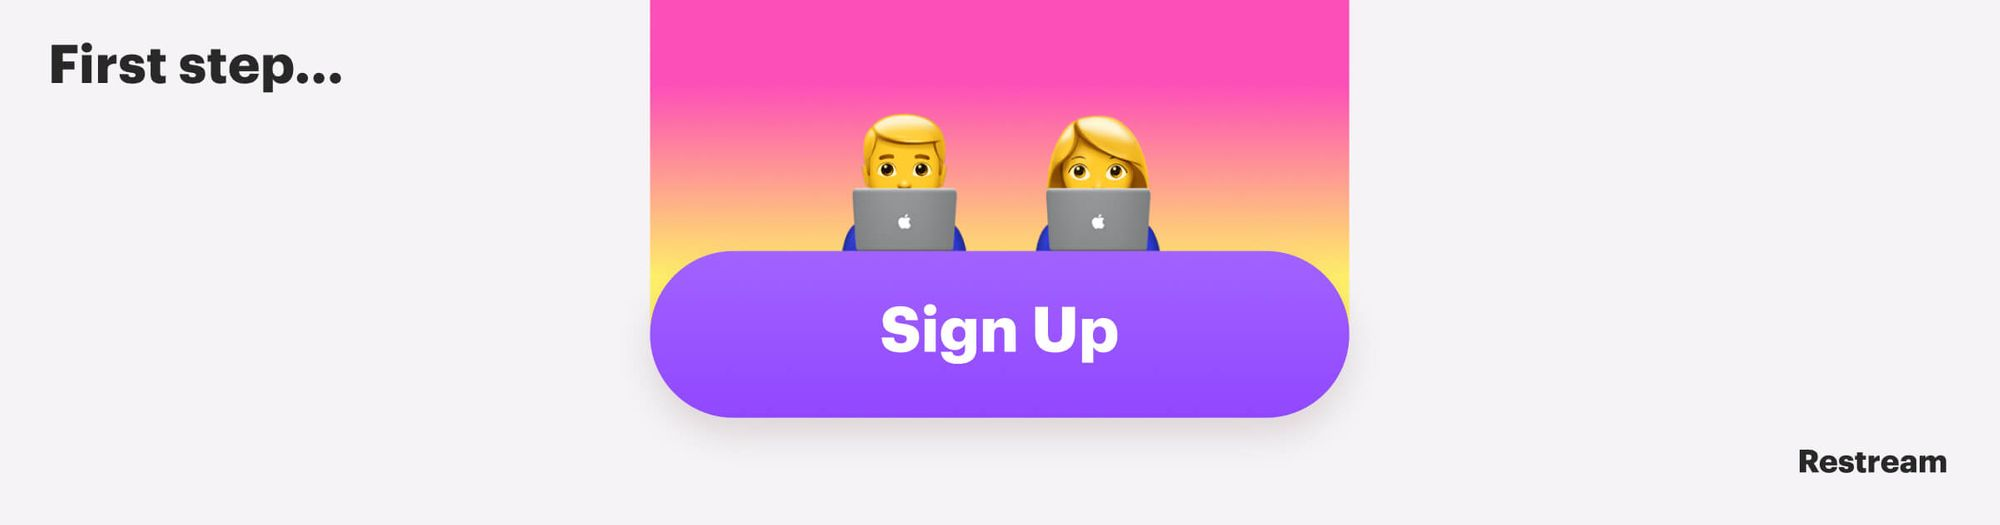 How to sign up on Twitch